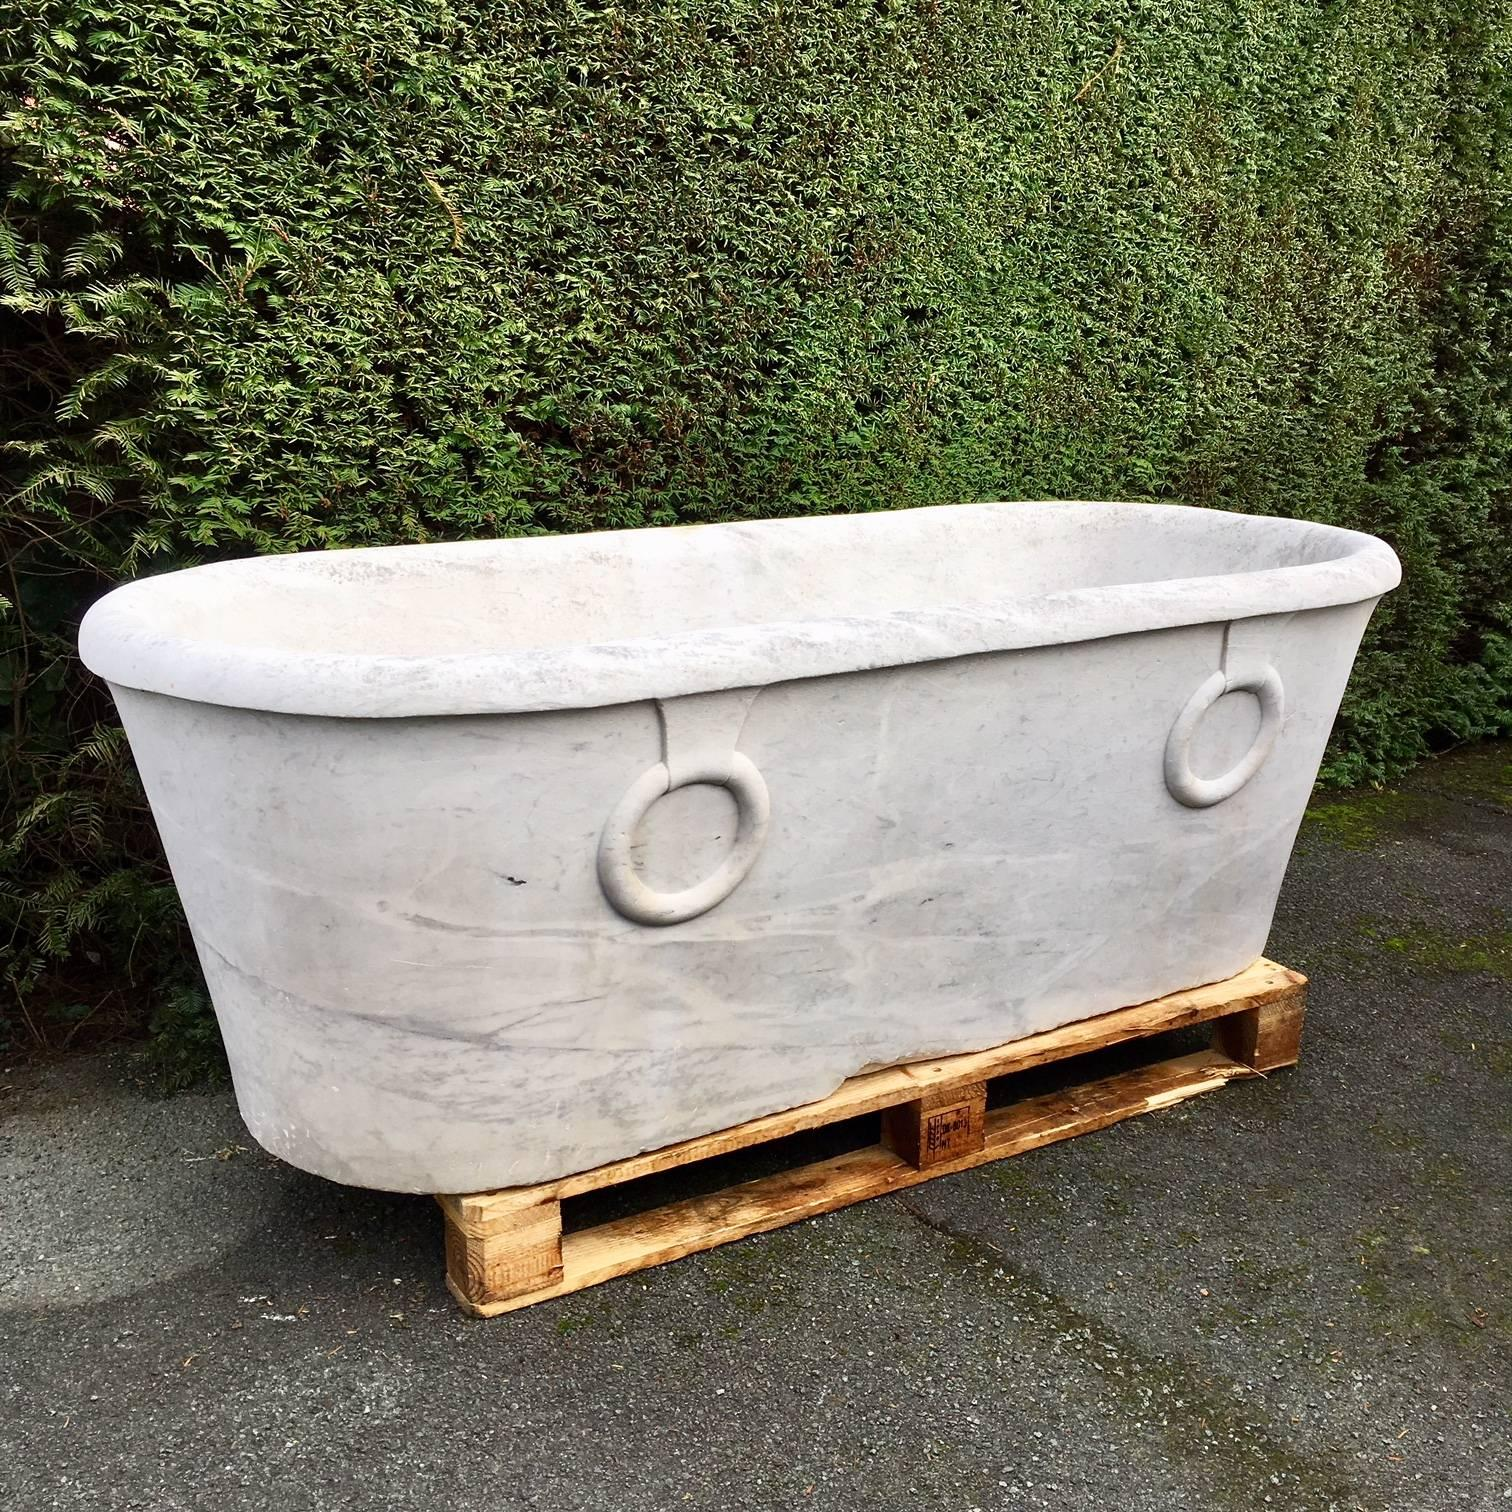 Antique Tin Bathtubs For Sale Image Antique And Candle